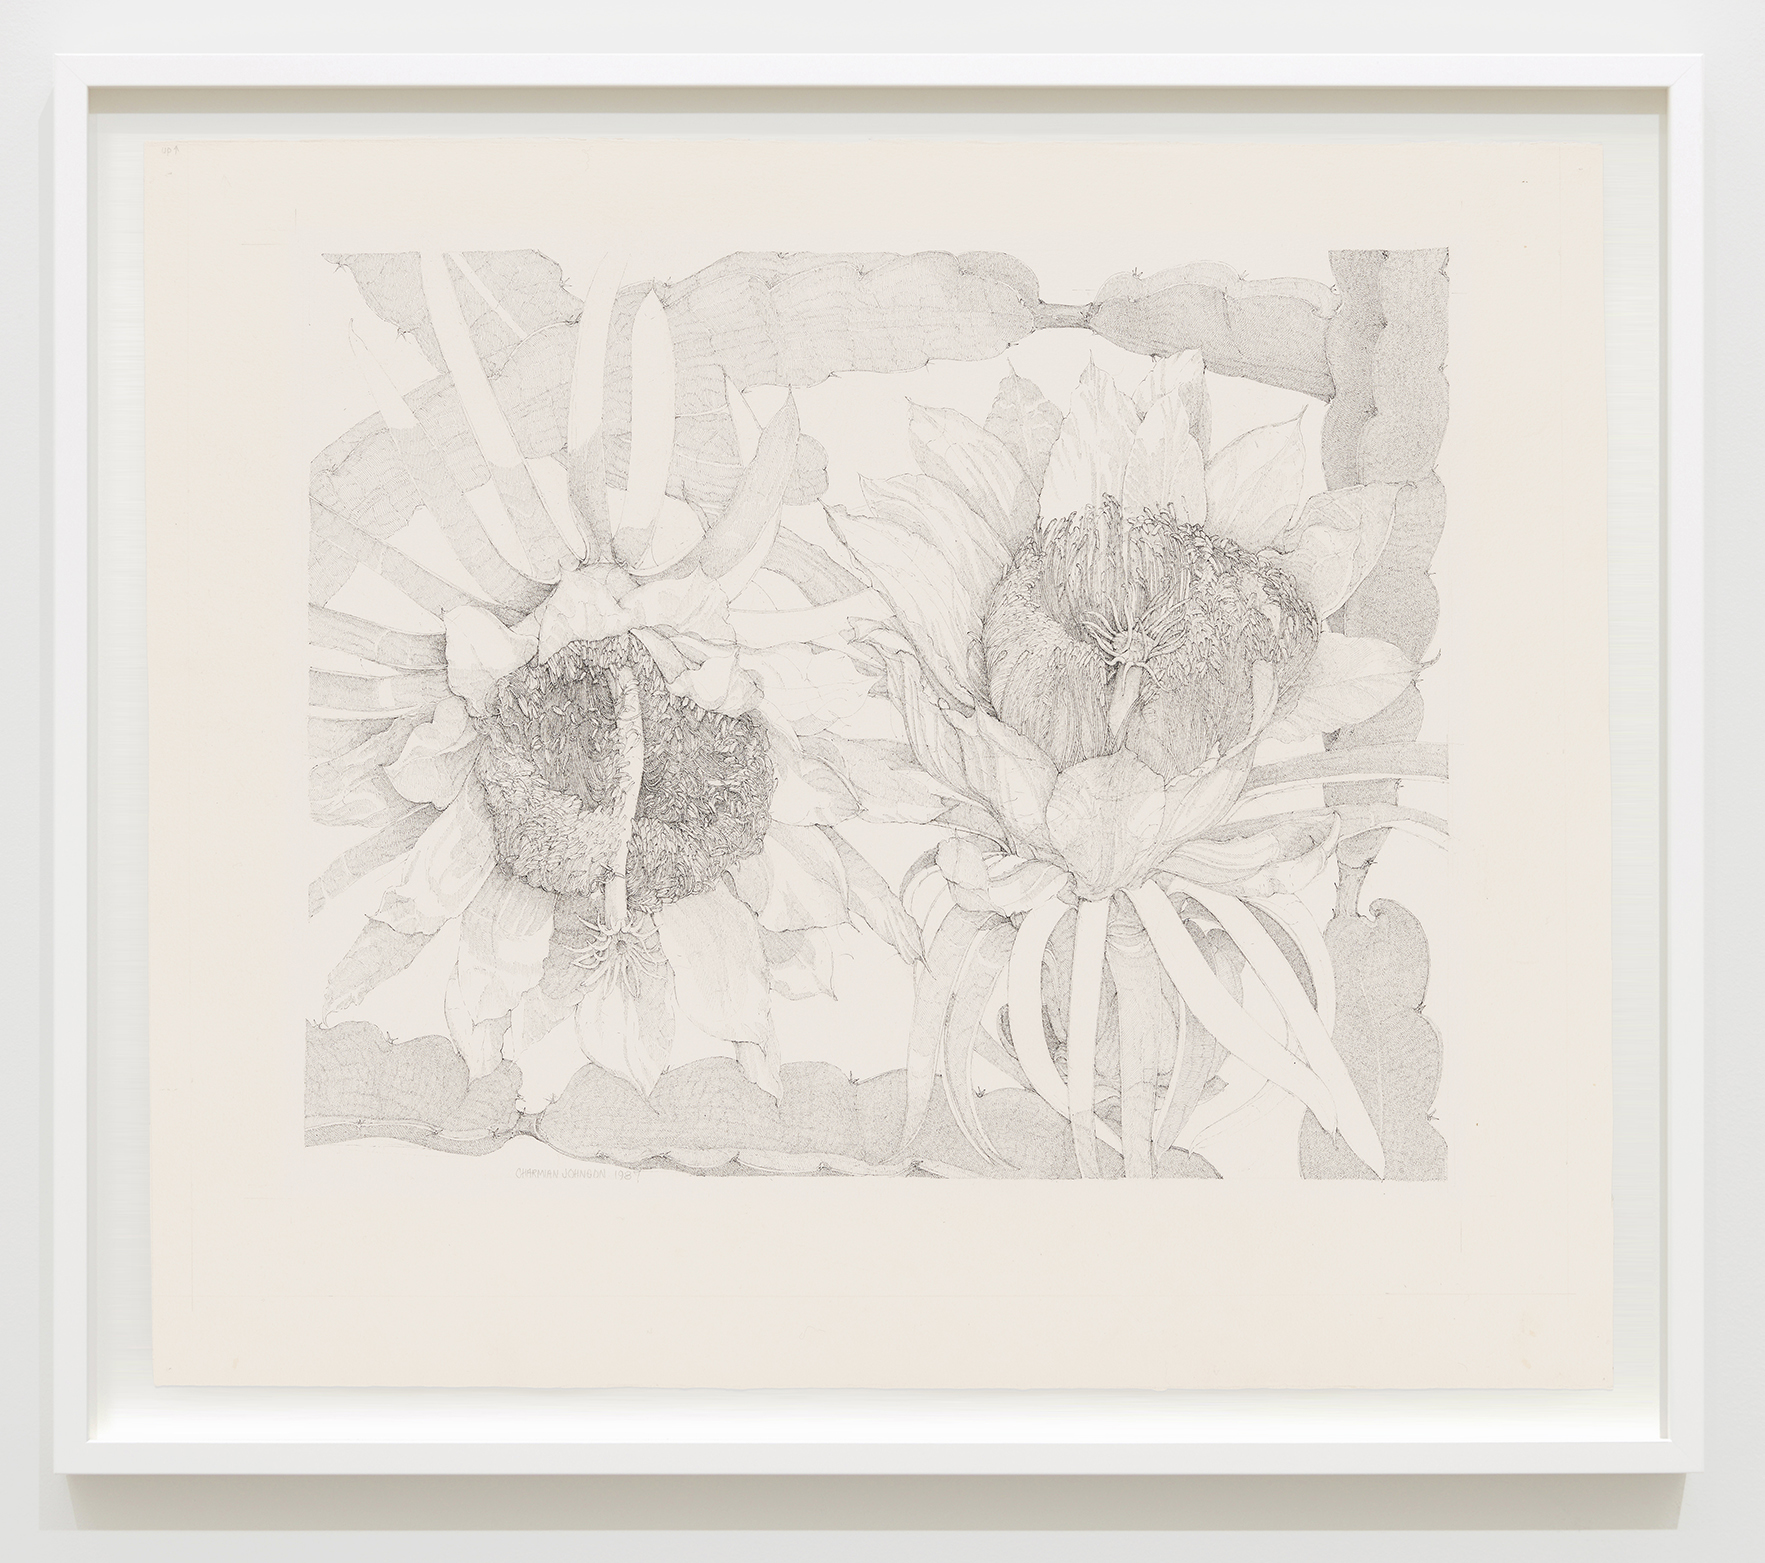 Charmian Johnson, Night-Blooming Cereus; Hylocereus Undatus, 1987, ink on paper, 26 x 30 in. (65 x 76 cm) by